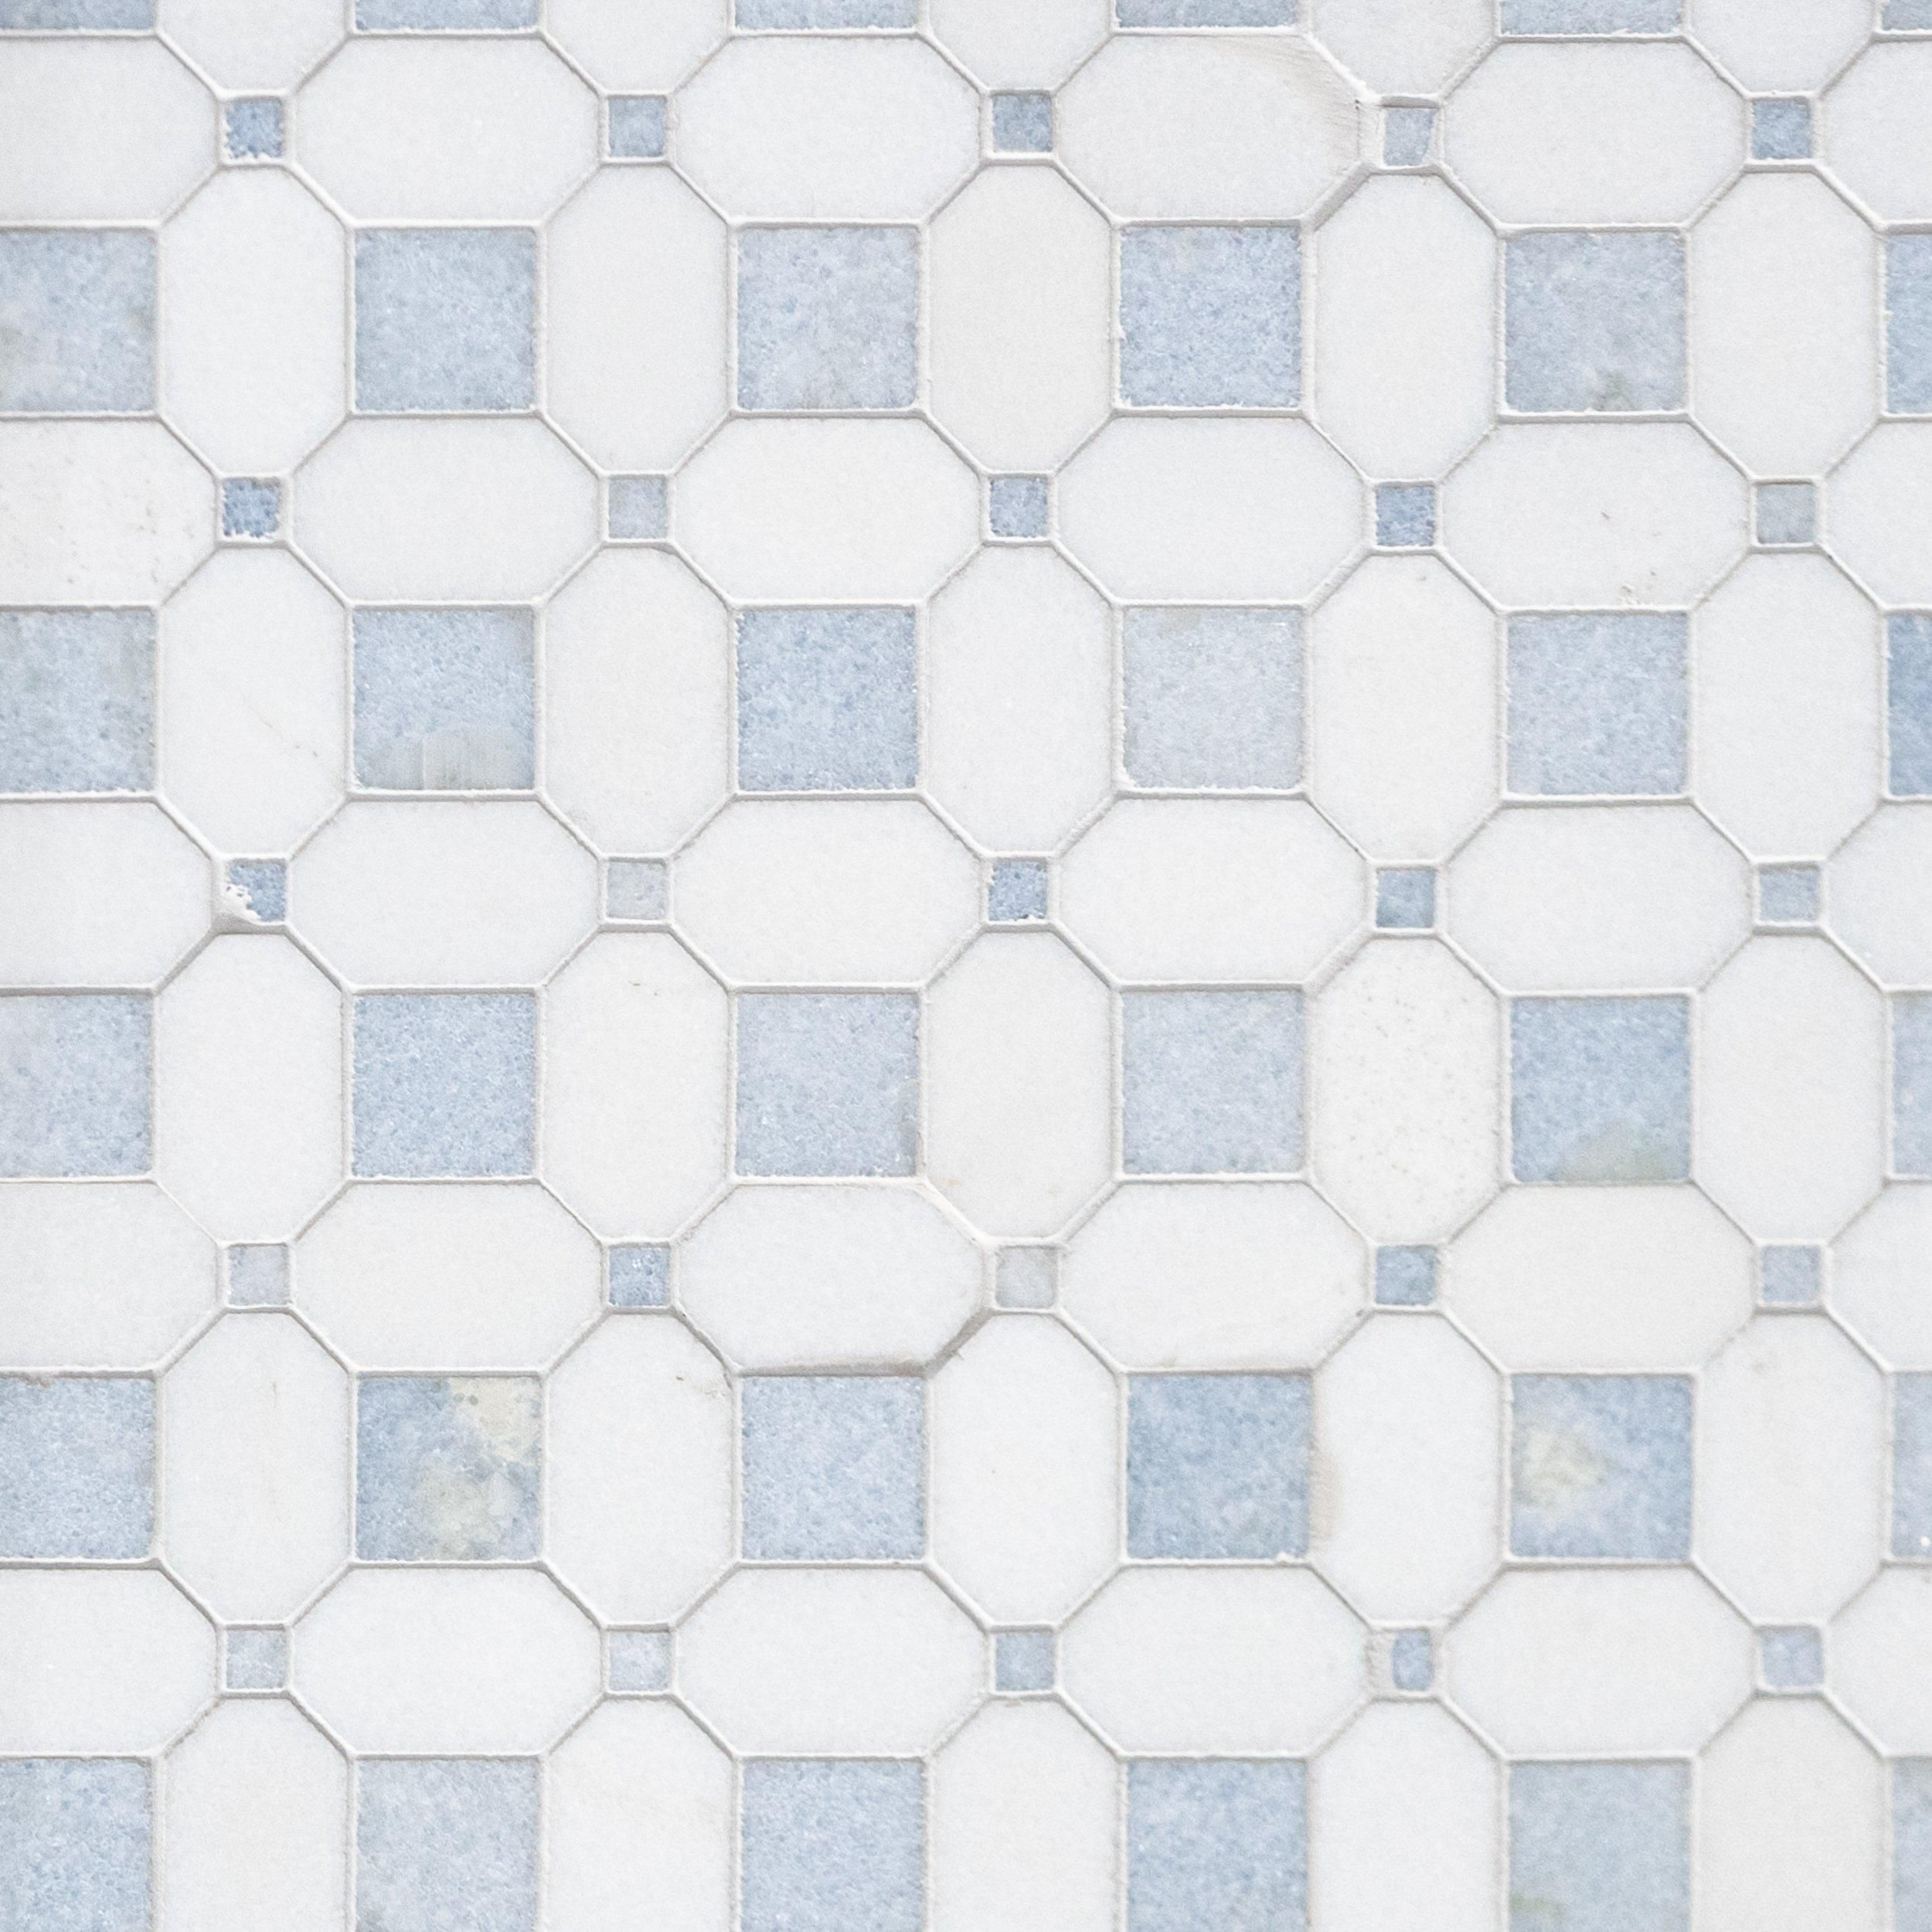 Thassos Blue Celeste Basket Weave Marble Mosaic In 2020 Marble Mosaic Blue Kitchen Tiles Stone Flooring